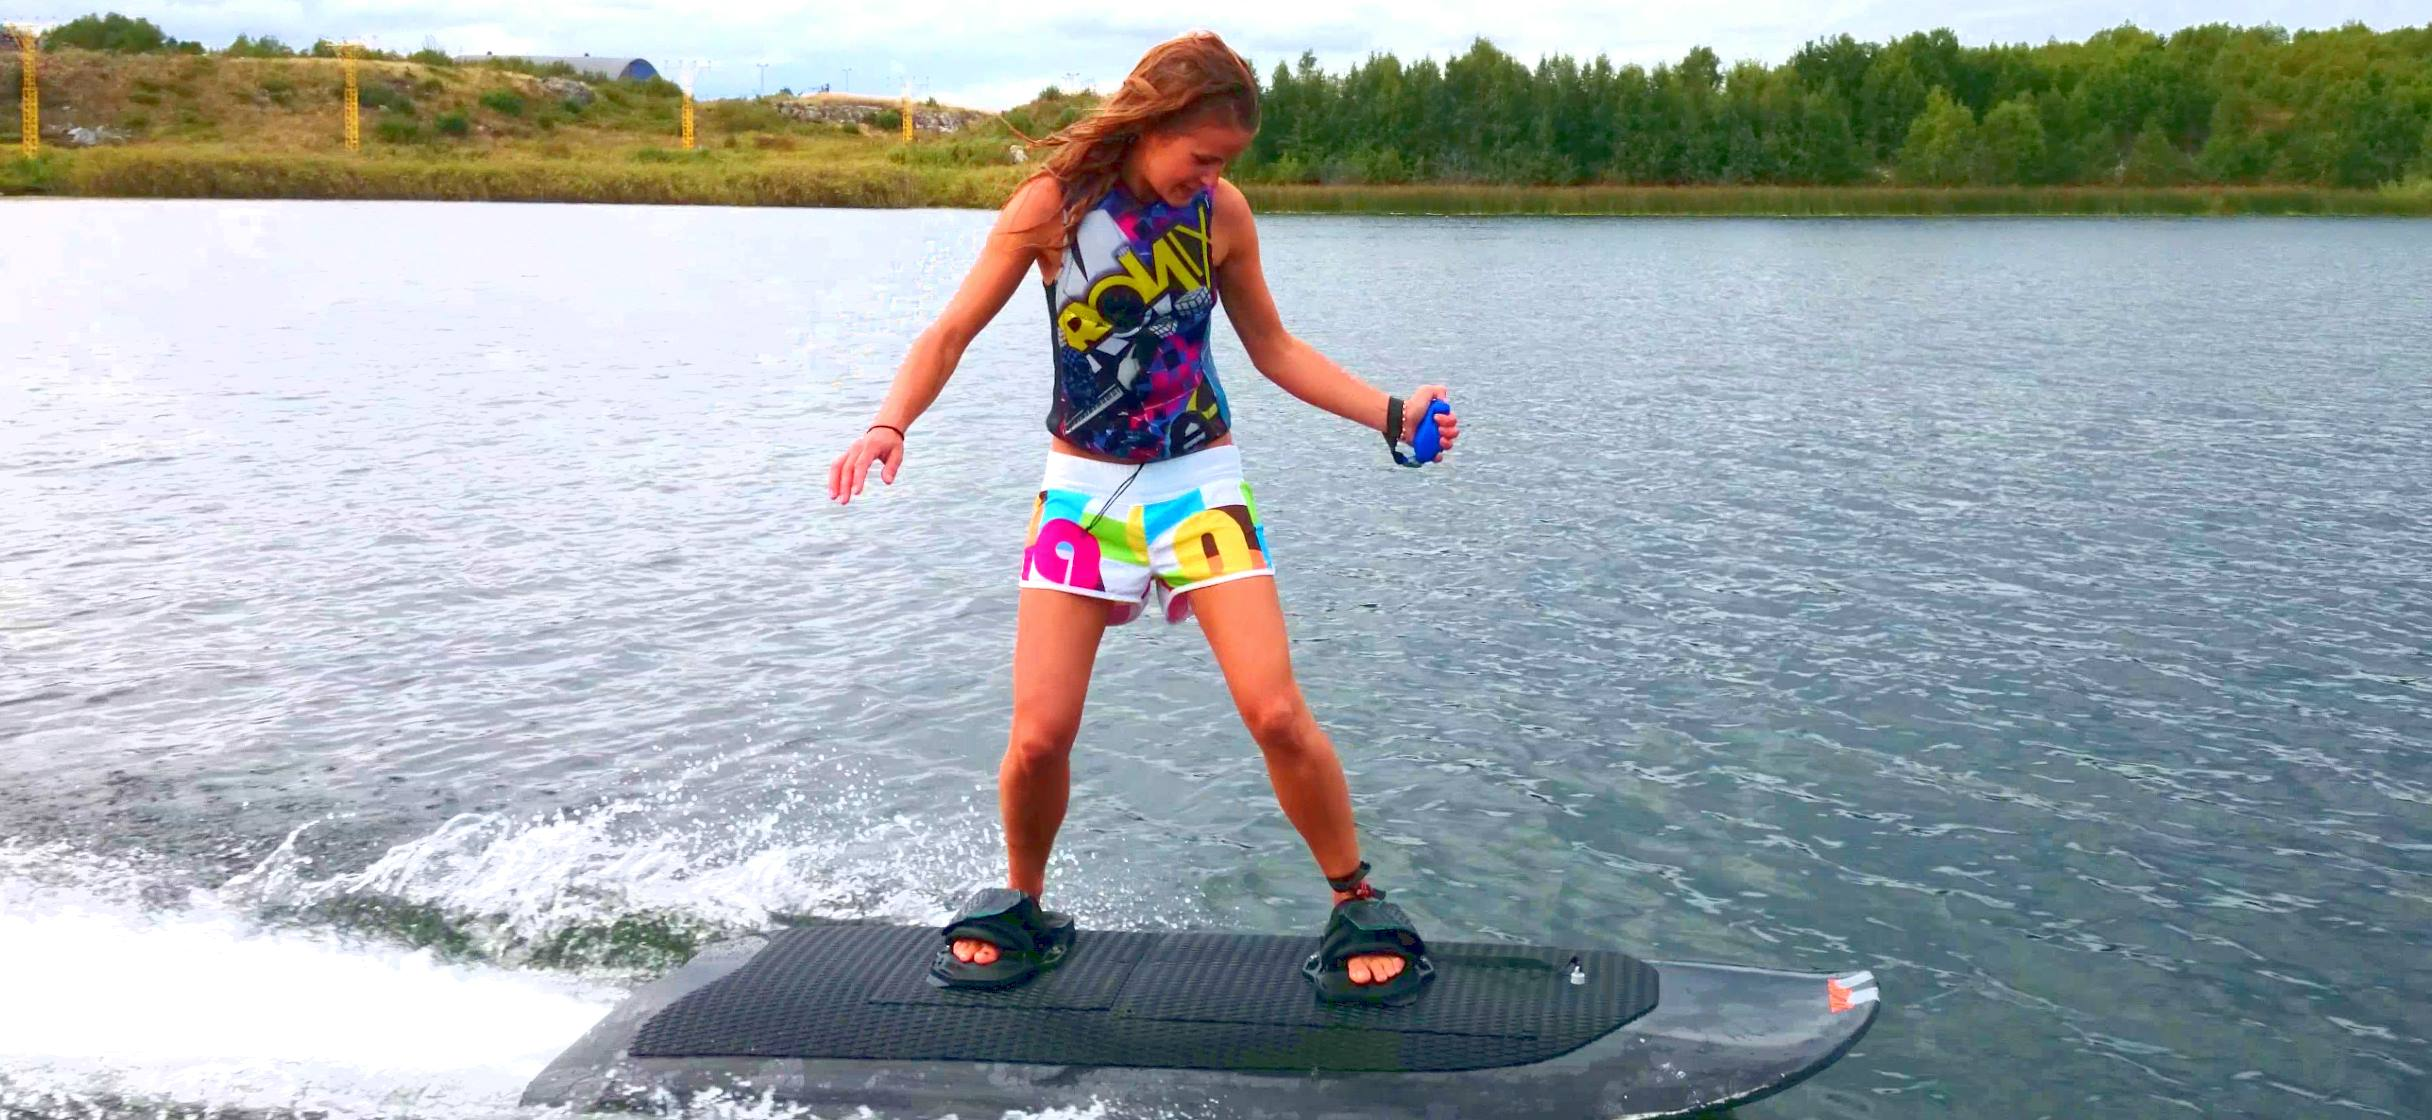 electric powered wakeboard une prouesse technologique. Black Bedroom Furniture Sets. Home Design Ideas